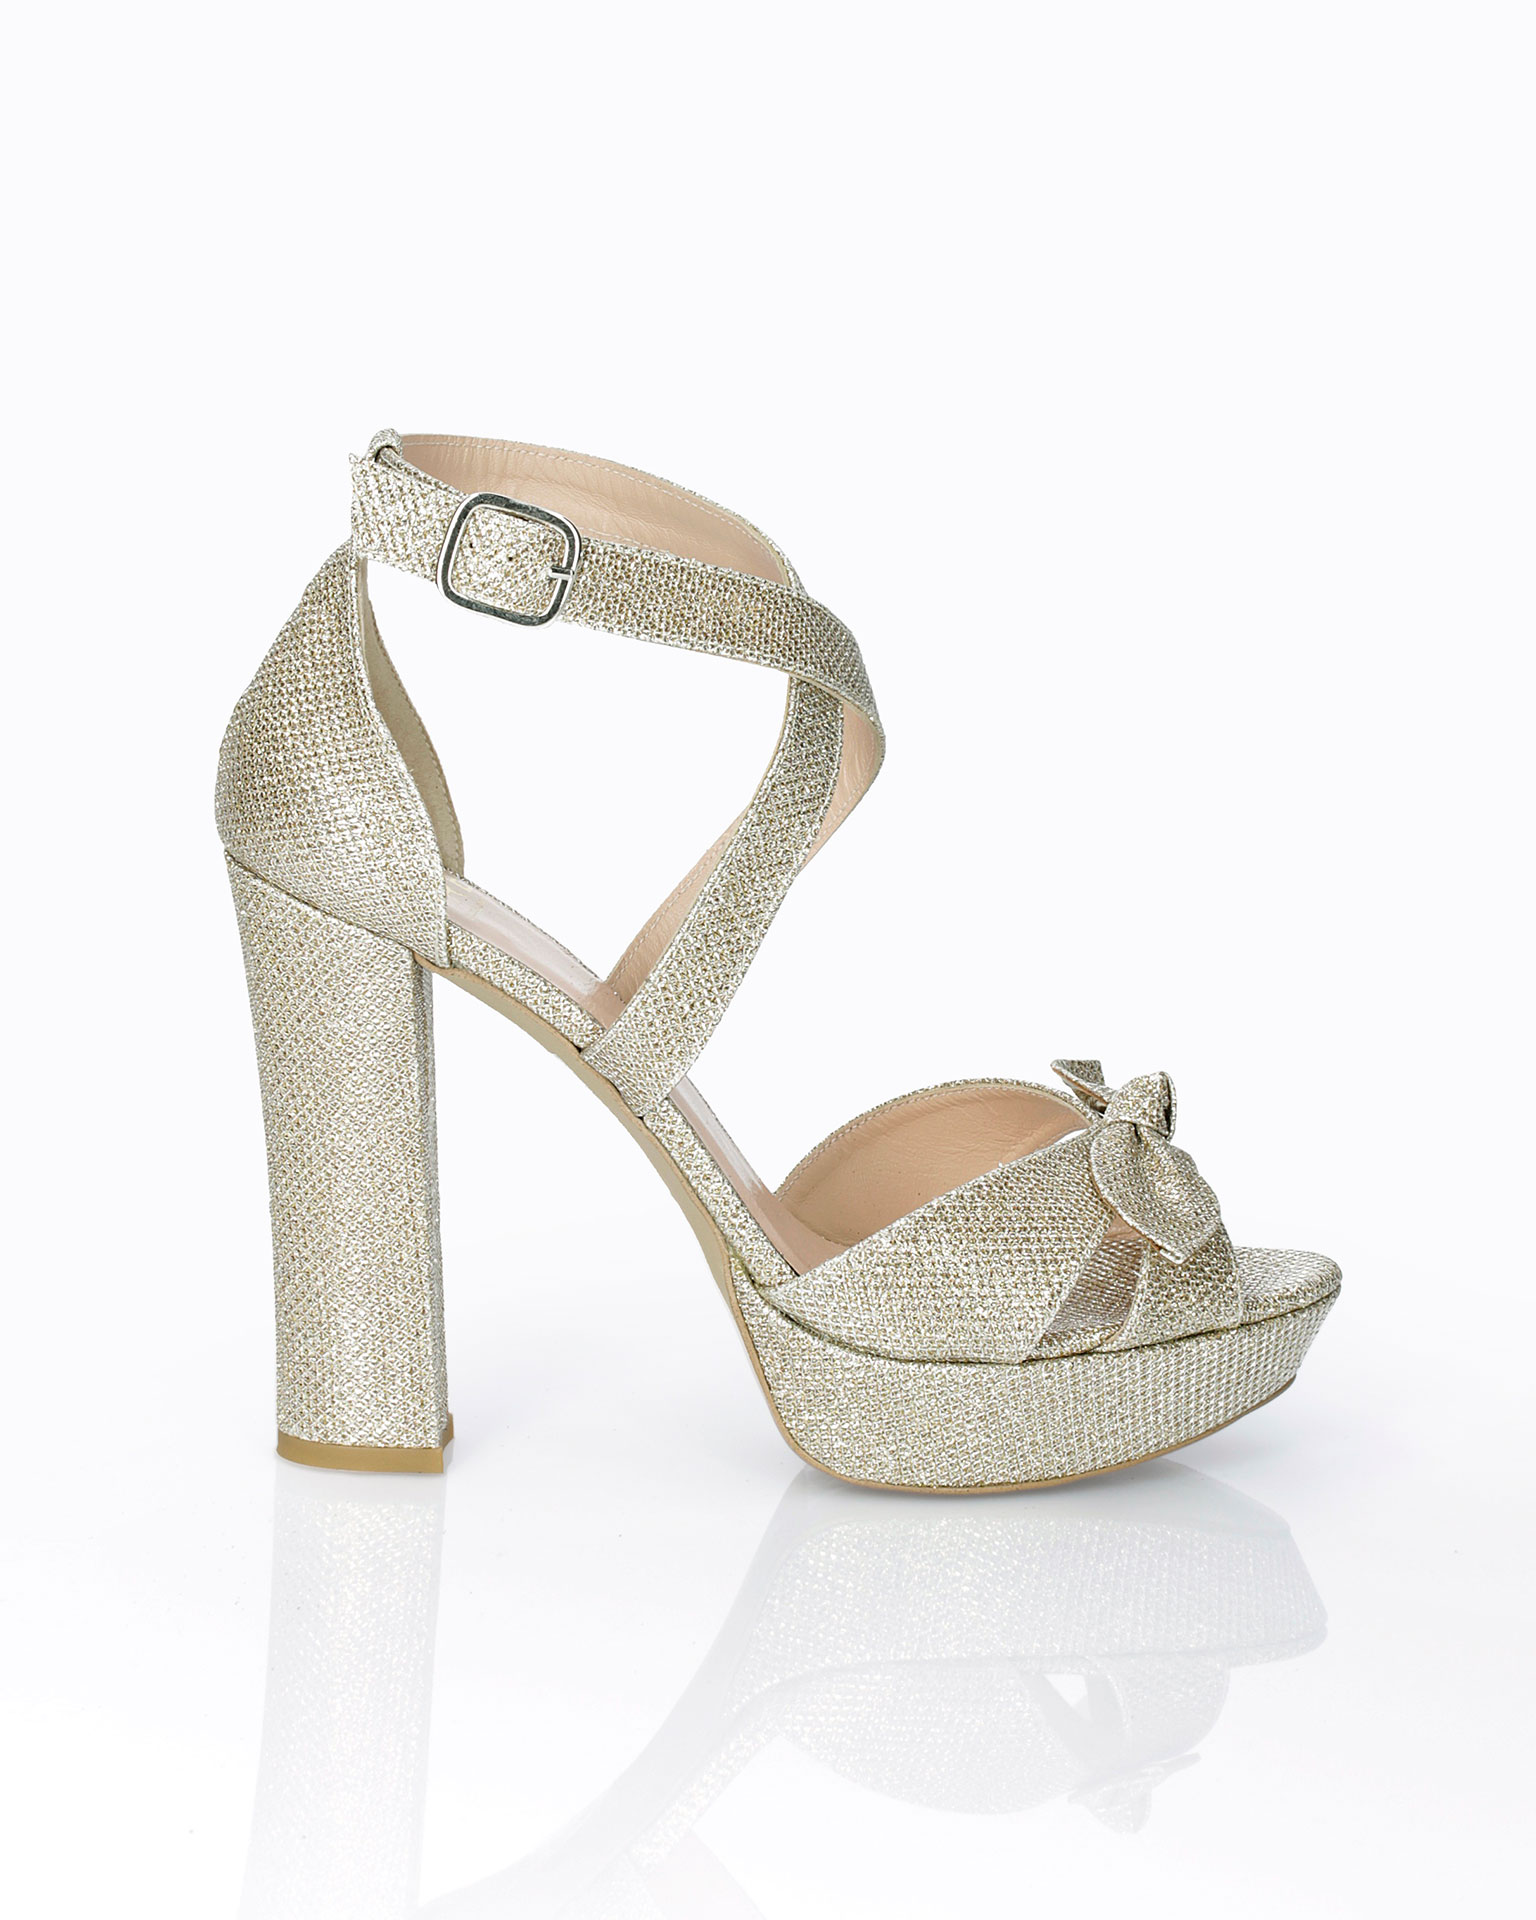 Woven fabric bridal sandal. With high heel, closed back and bow detail. Available in natural, gold and steel 2019 AIRE BARCELONA Collection.